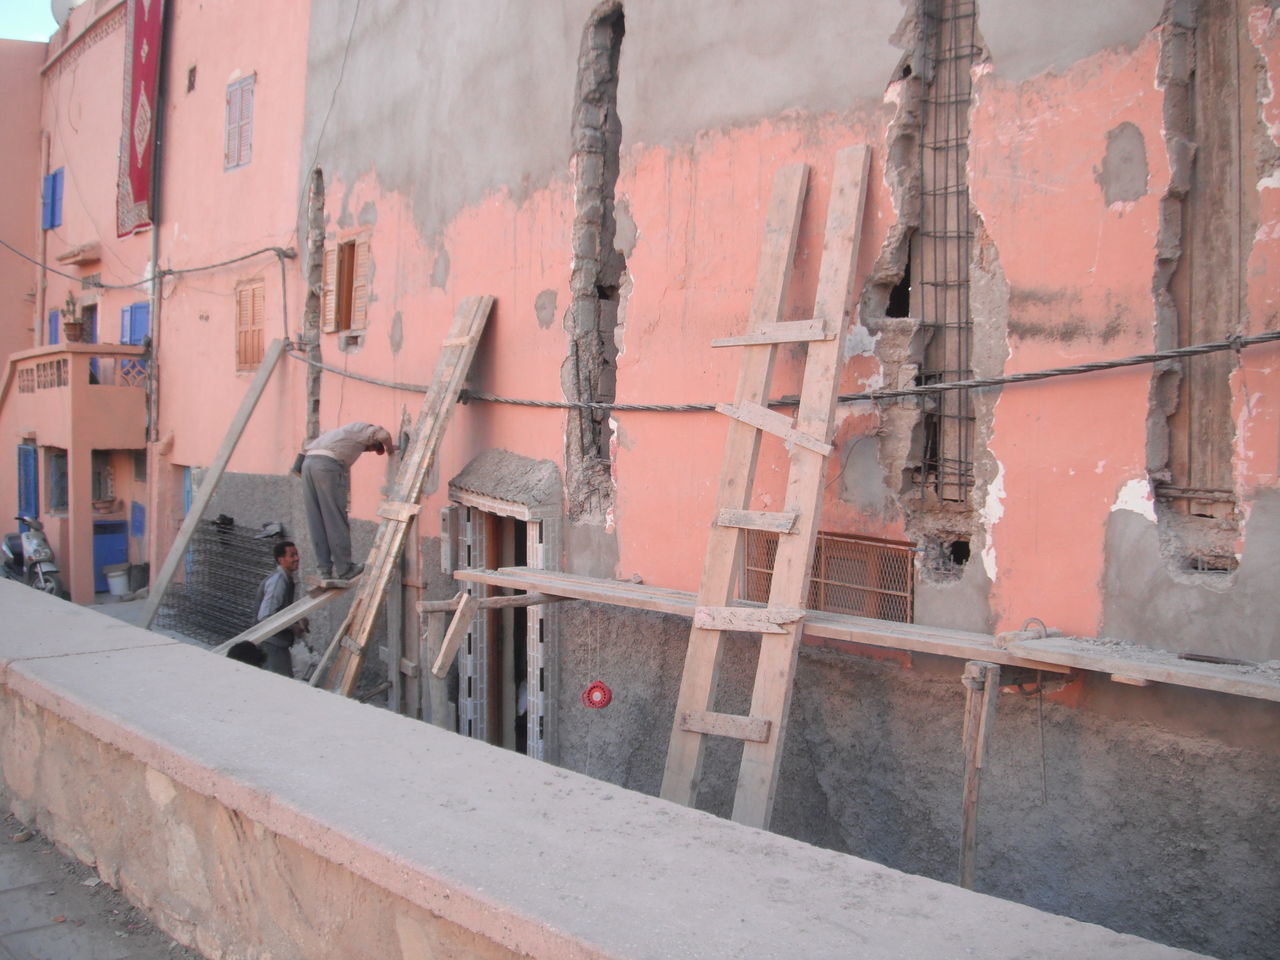 Moroccan surf town. Africa Architecture Backpacker Building Exterior Building Site Built Structure Construction Developing Development Ladder Morocco North Africa Outdoors Pink Repair Urban